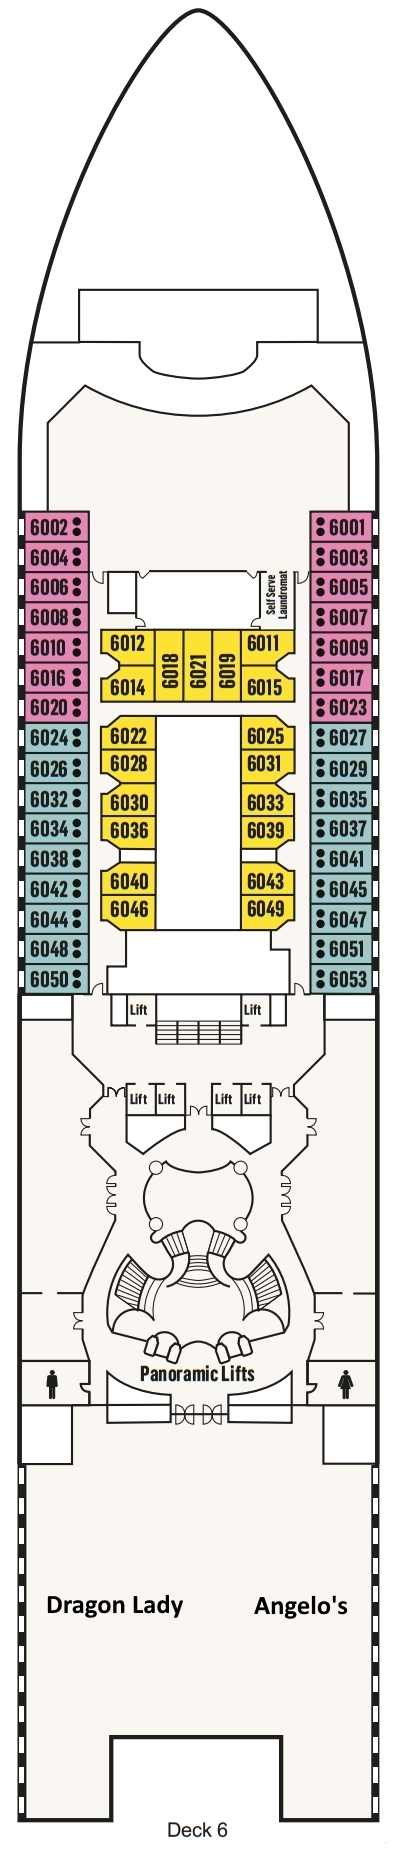 P&O - Pacific Explorer Deck 6 layout